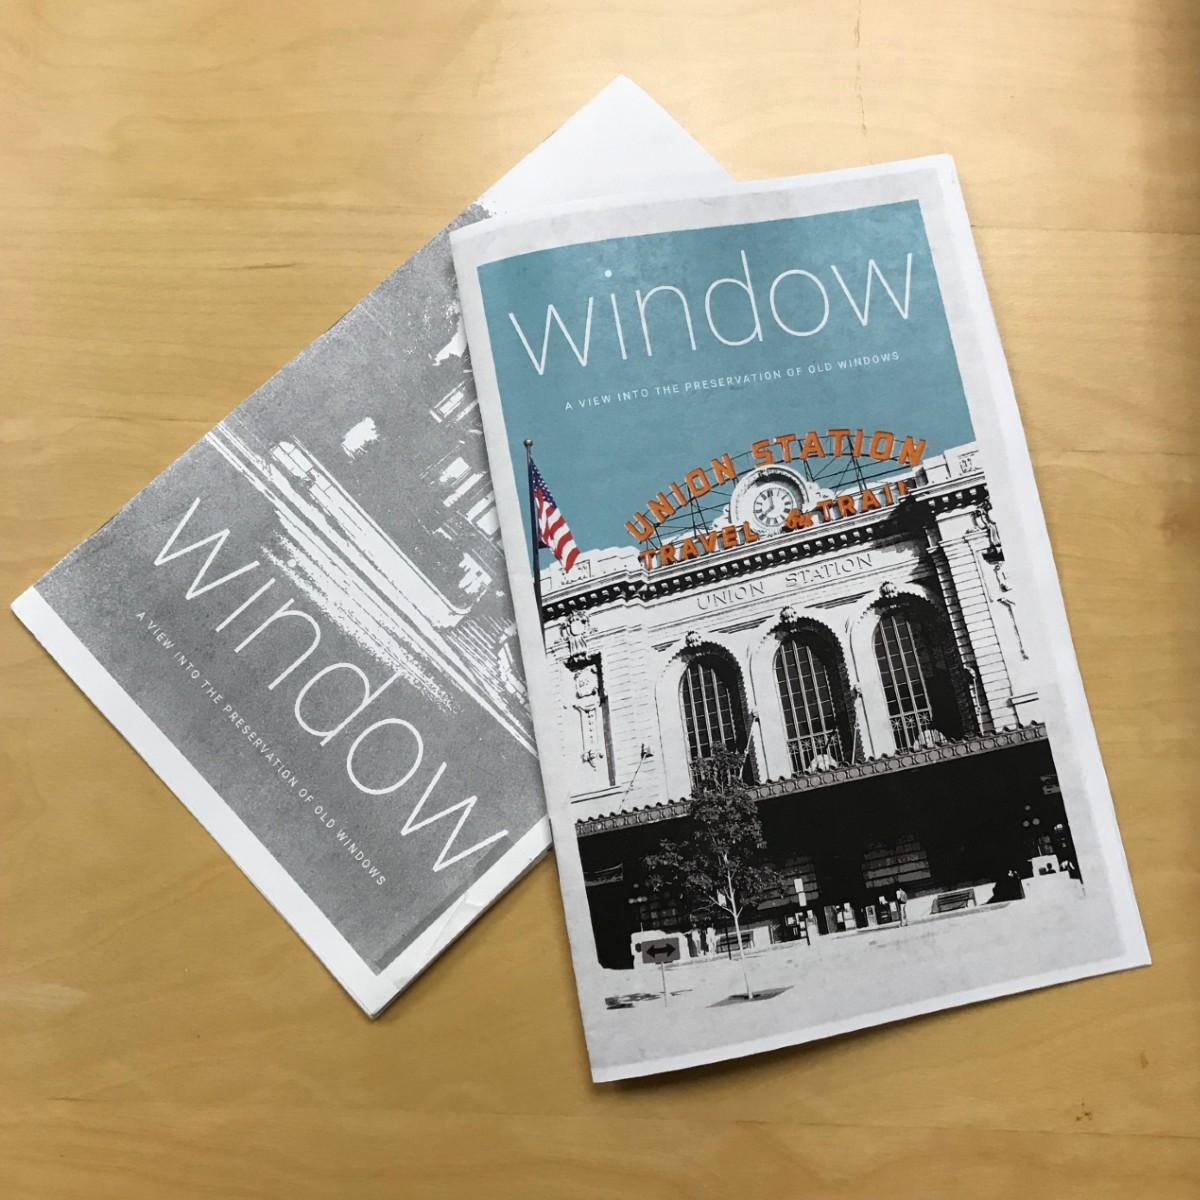 window zine examples from previous years